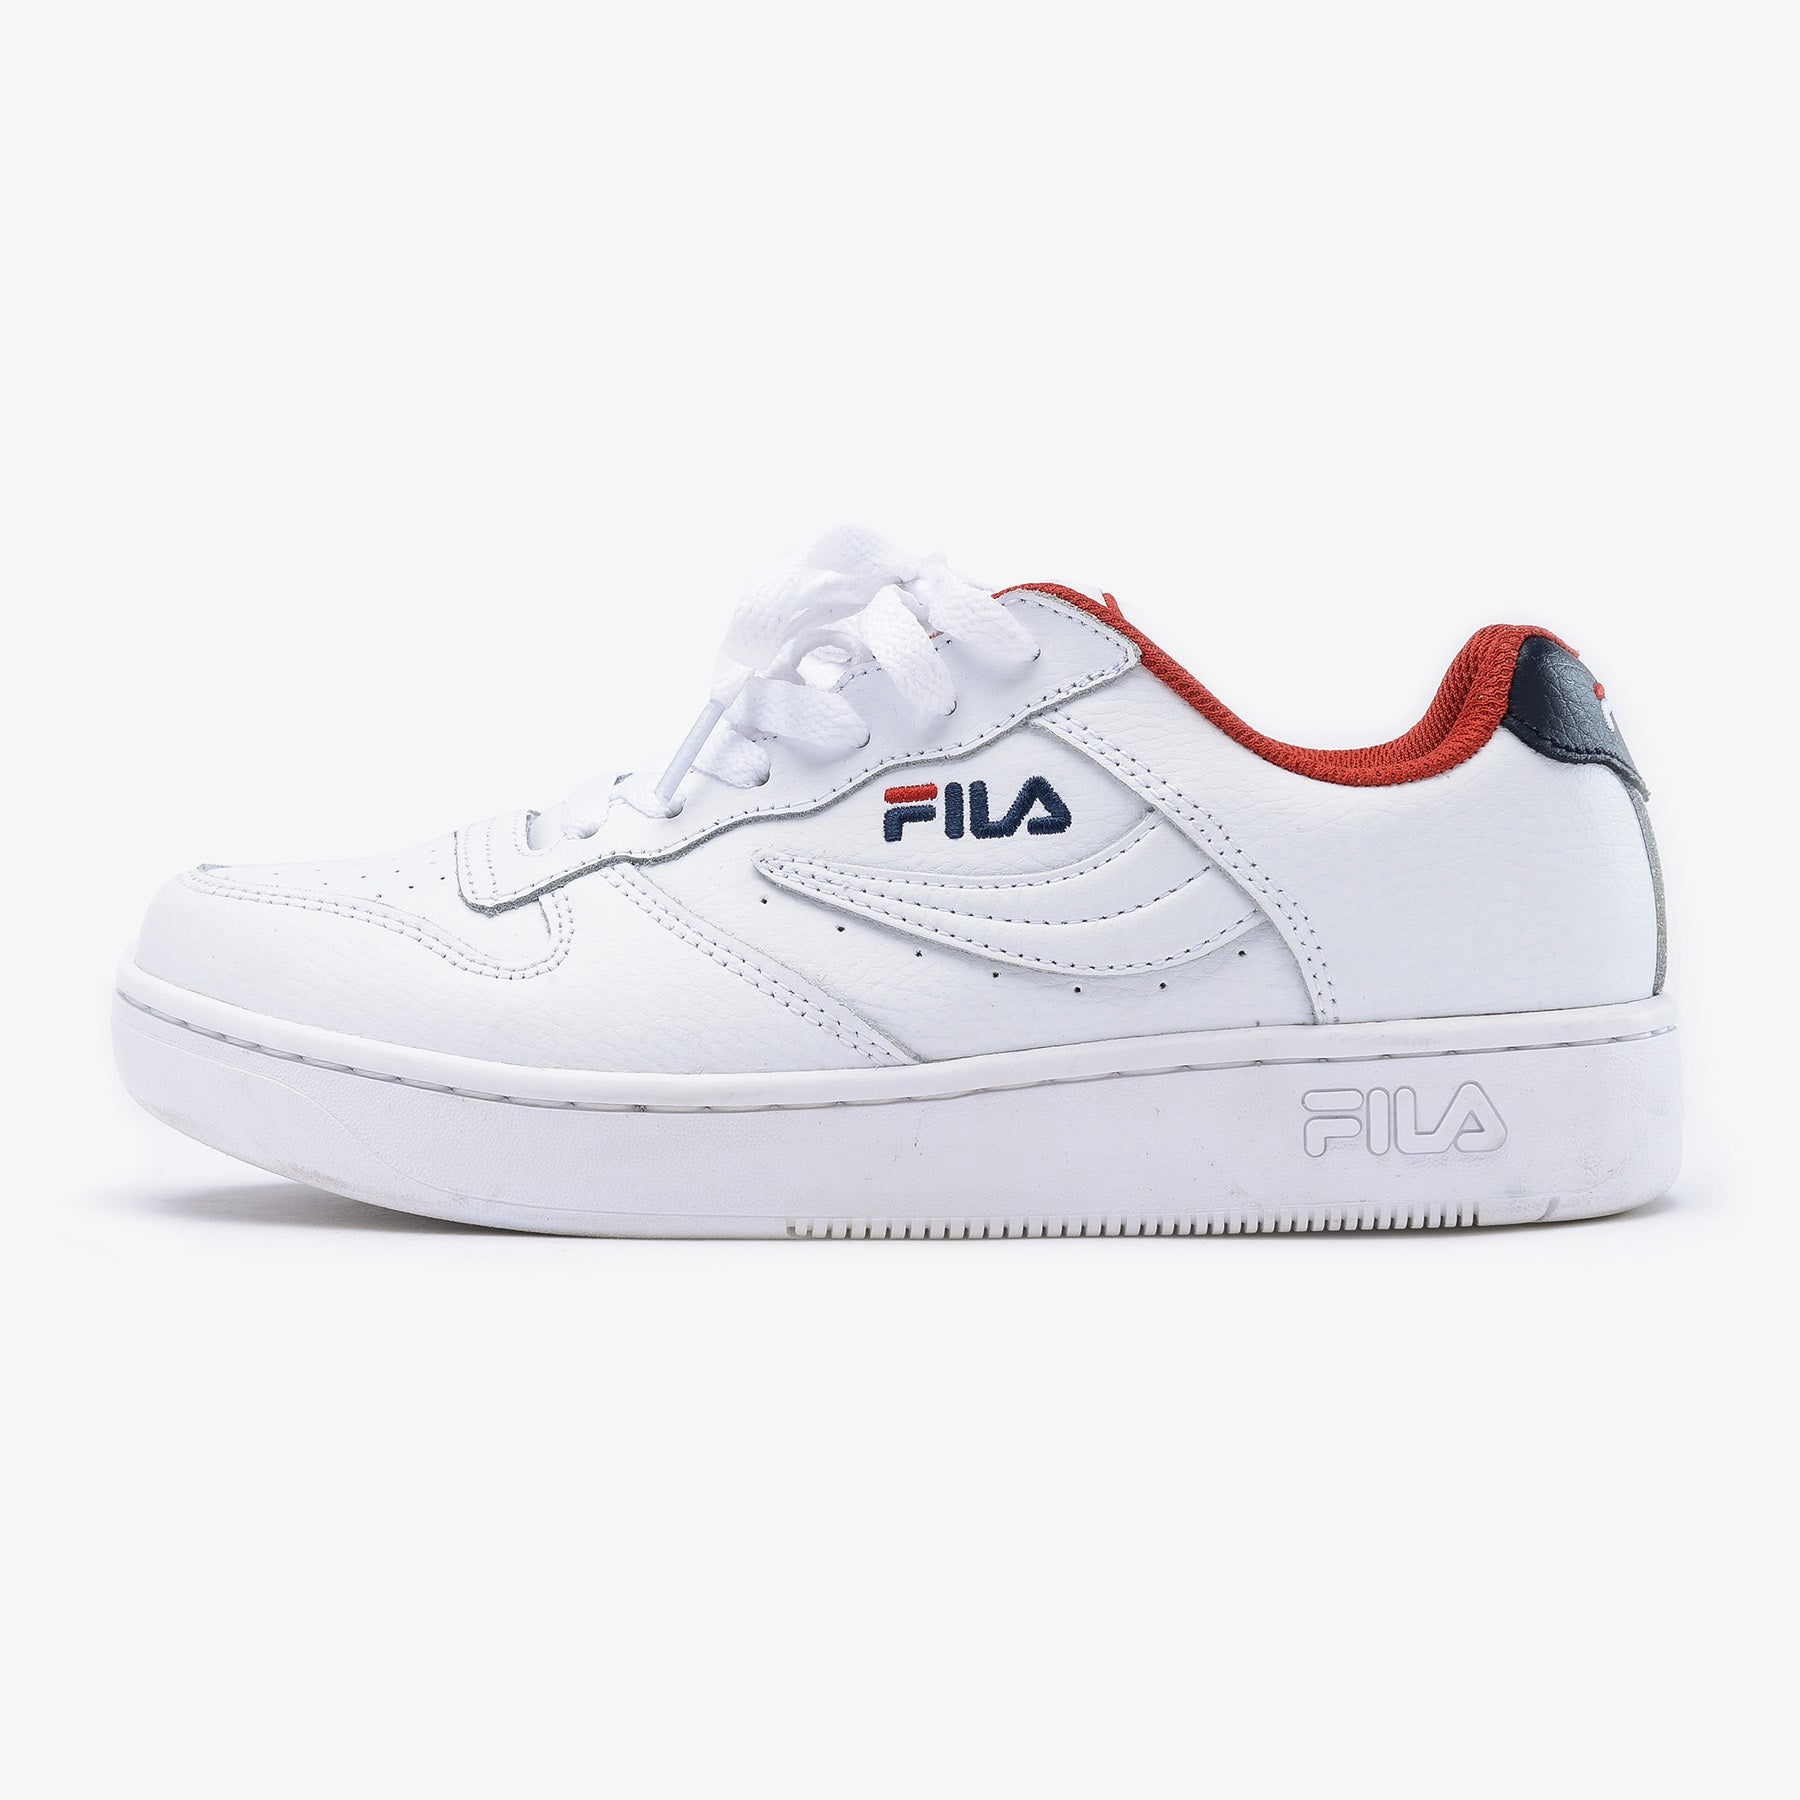 51f74970075c Fila - FX-100 Low 17 - White Navy Red